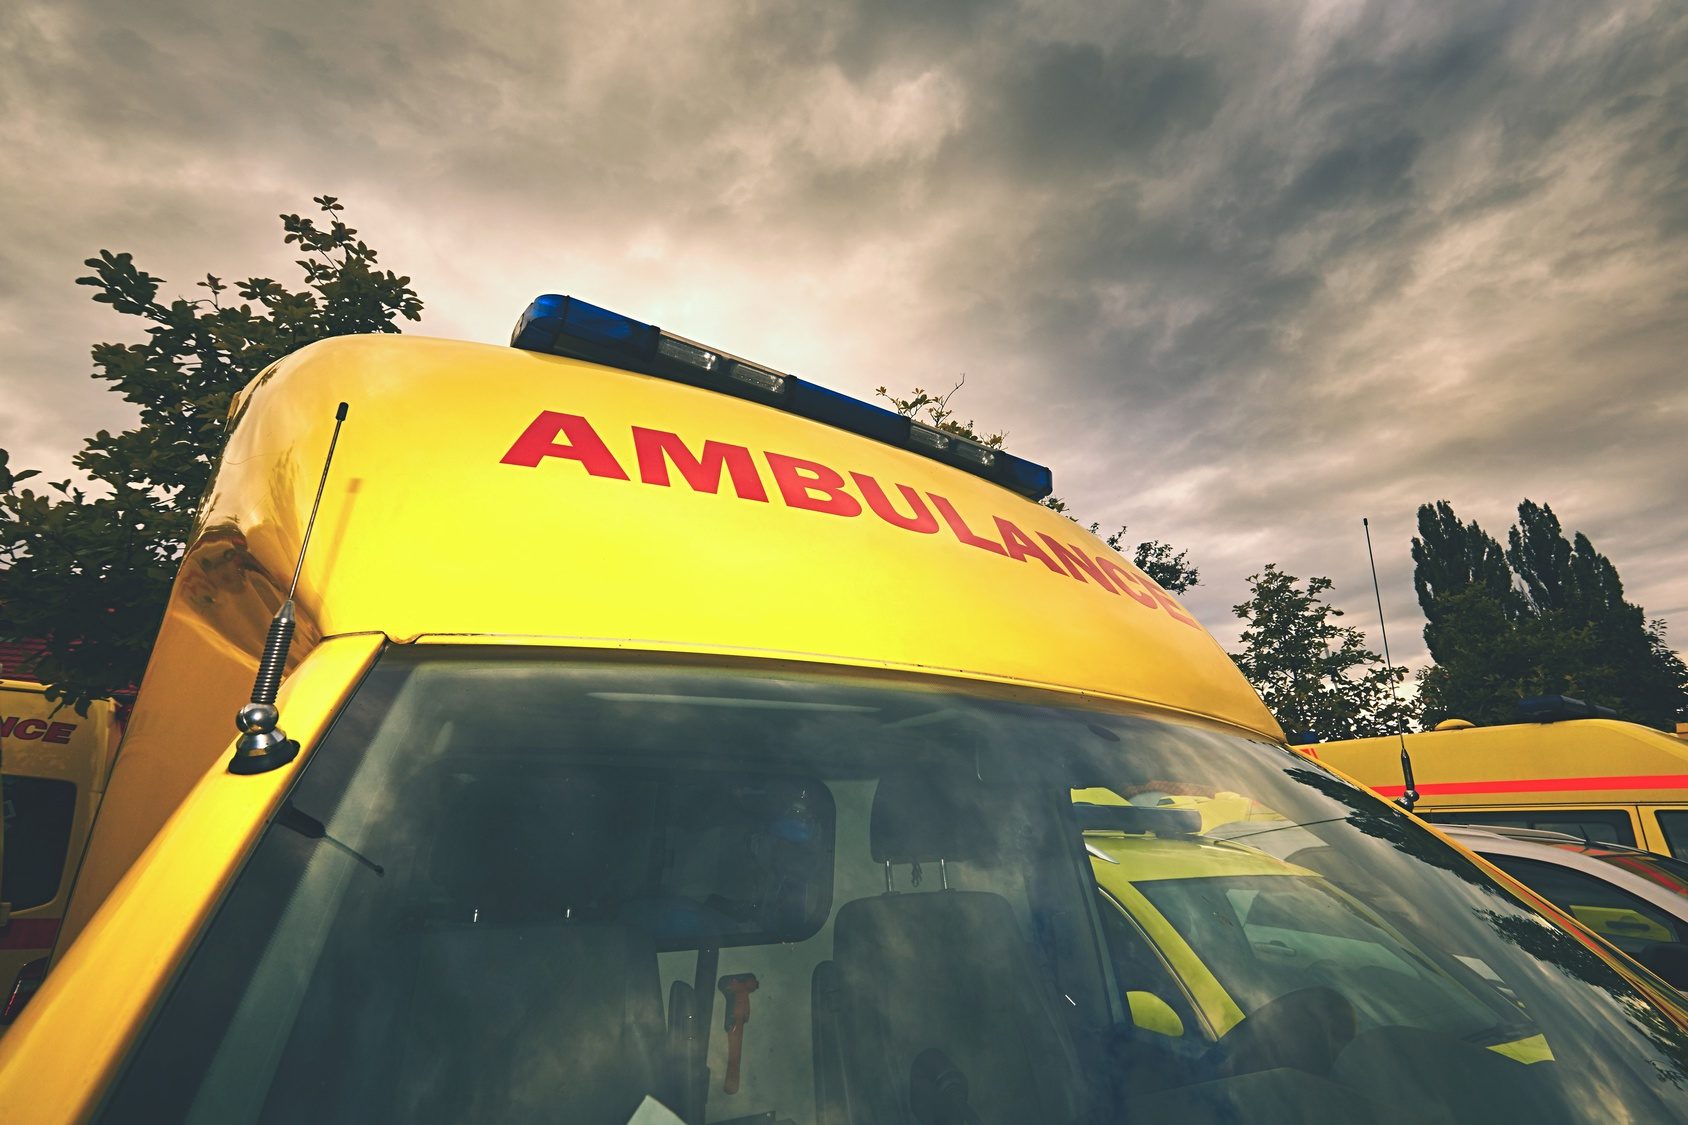 Glasgow will be trauma centre for region's patients